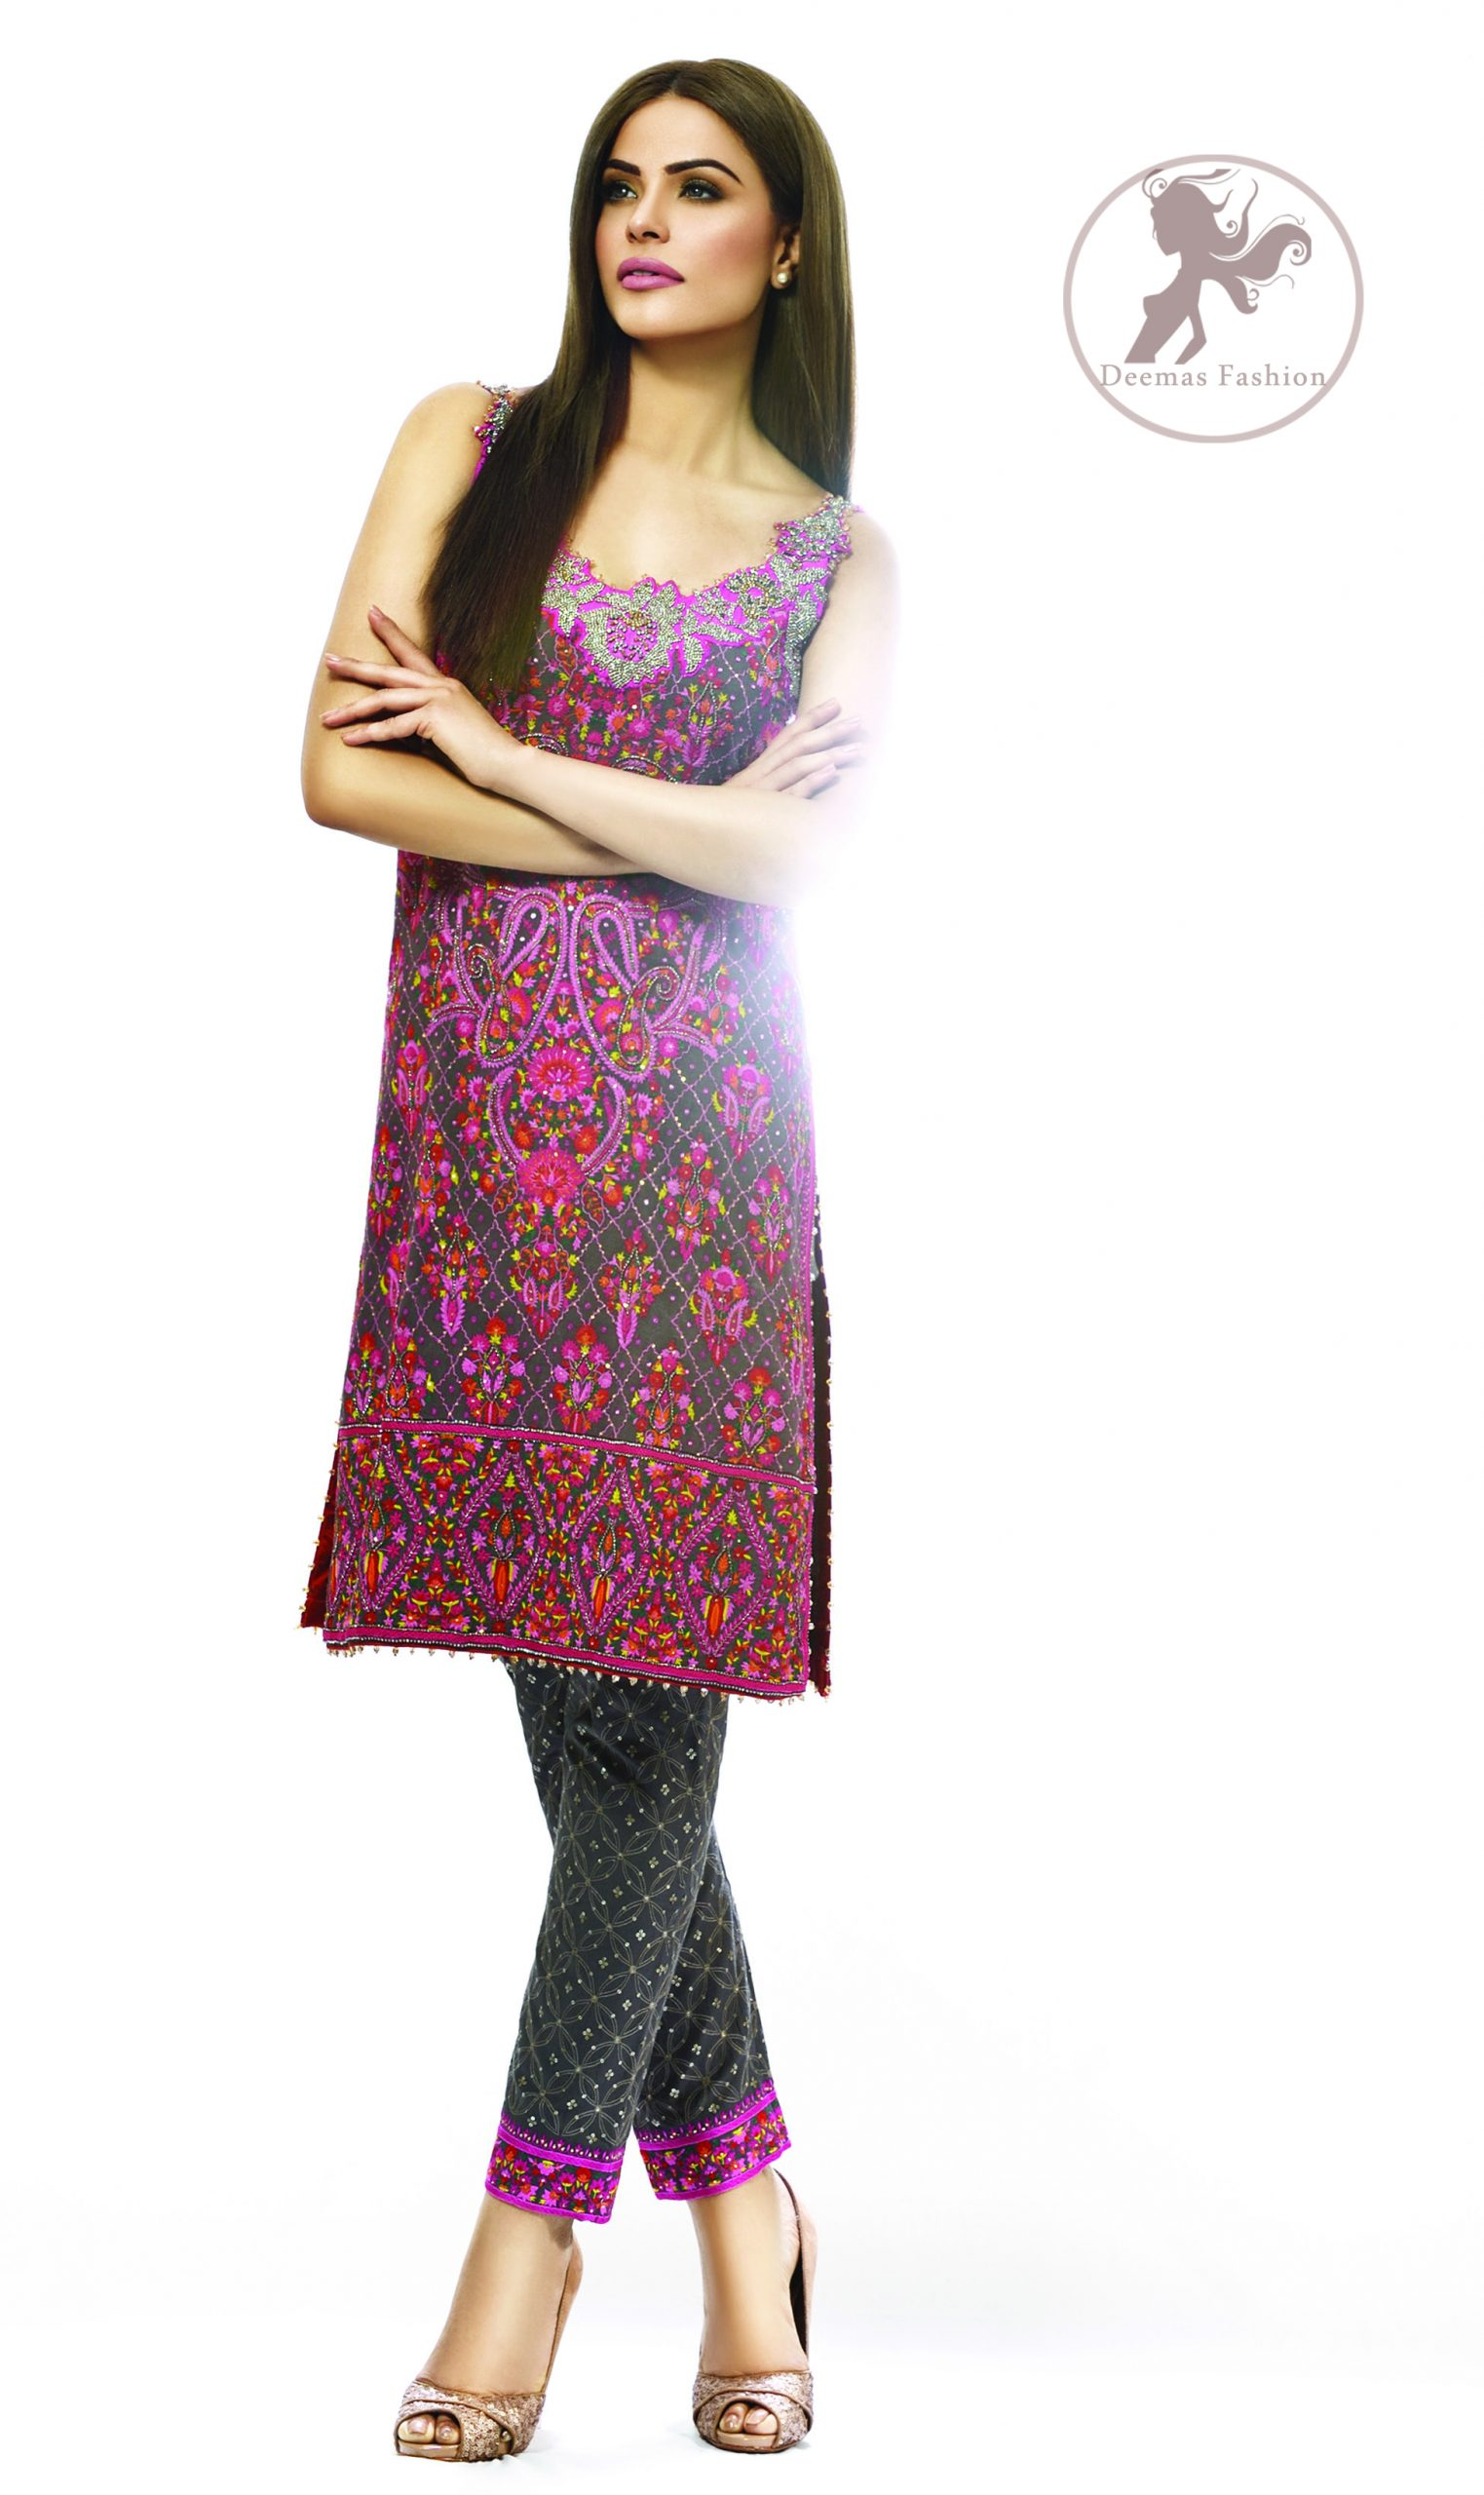 This dress is beautifully sculptured with floral embroidery, adorned with crisscross pattern, colorful embellishments and zerdozi work. The detailed geometric border gives a perfect ending to this shirt. Having sleeveless sleeves and small sprinkled motifs on shirt. Paired up with cigarette pants which is designed in crisscross pattern. It comprises with magenta chiffon dupatta.